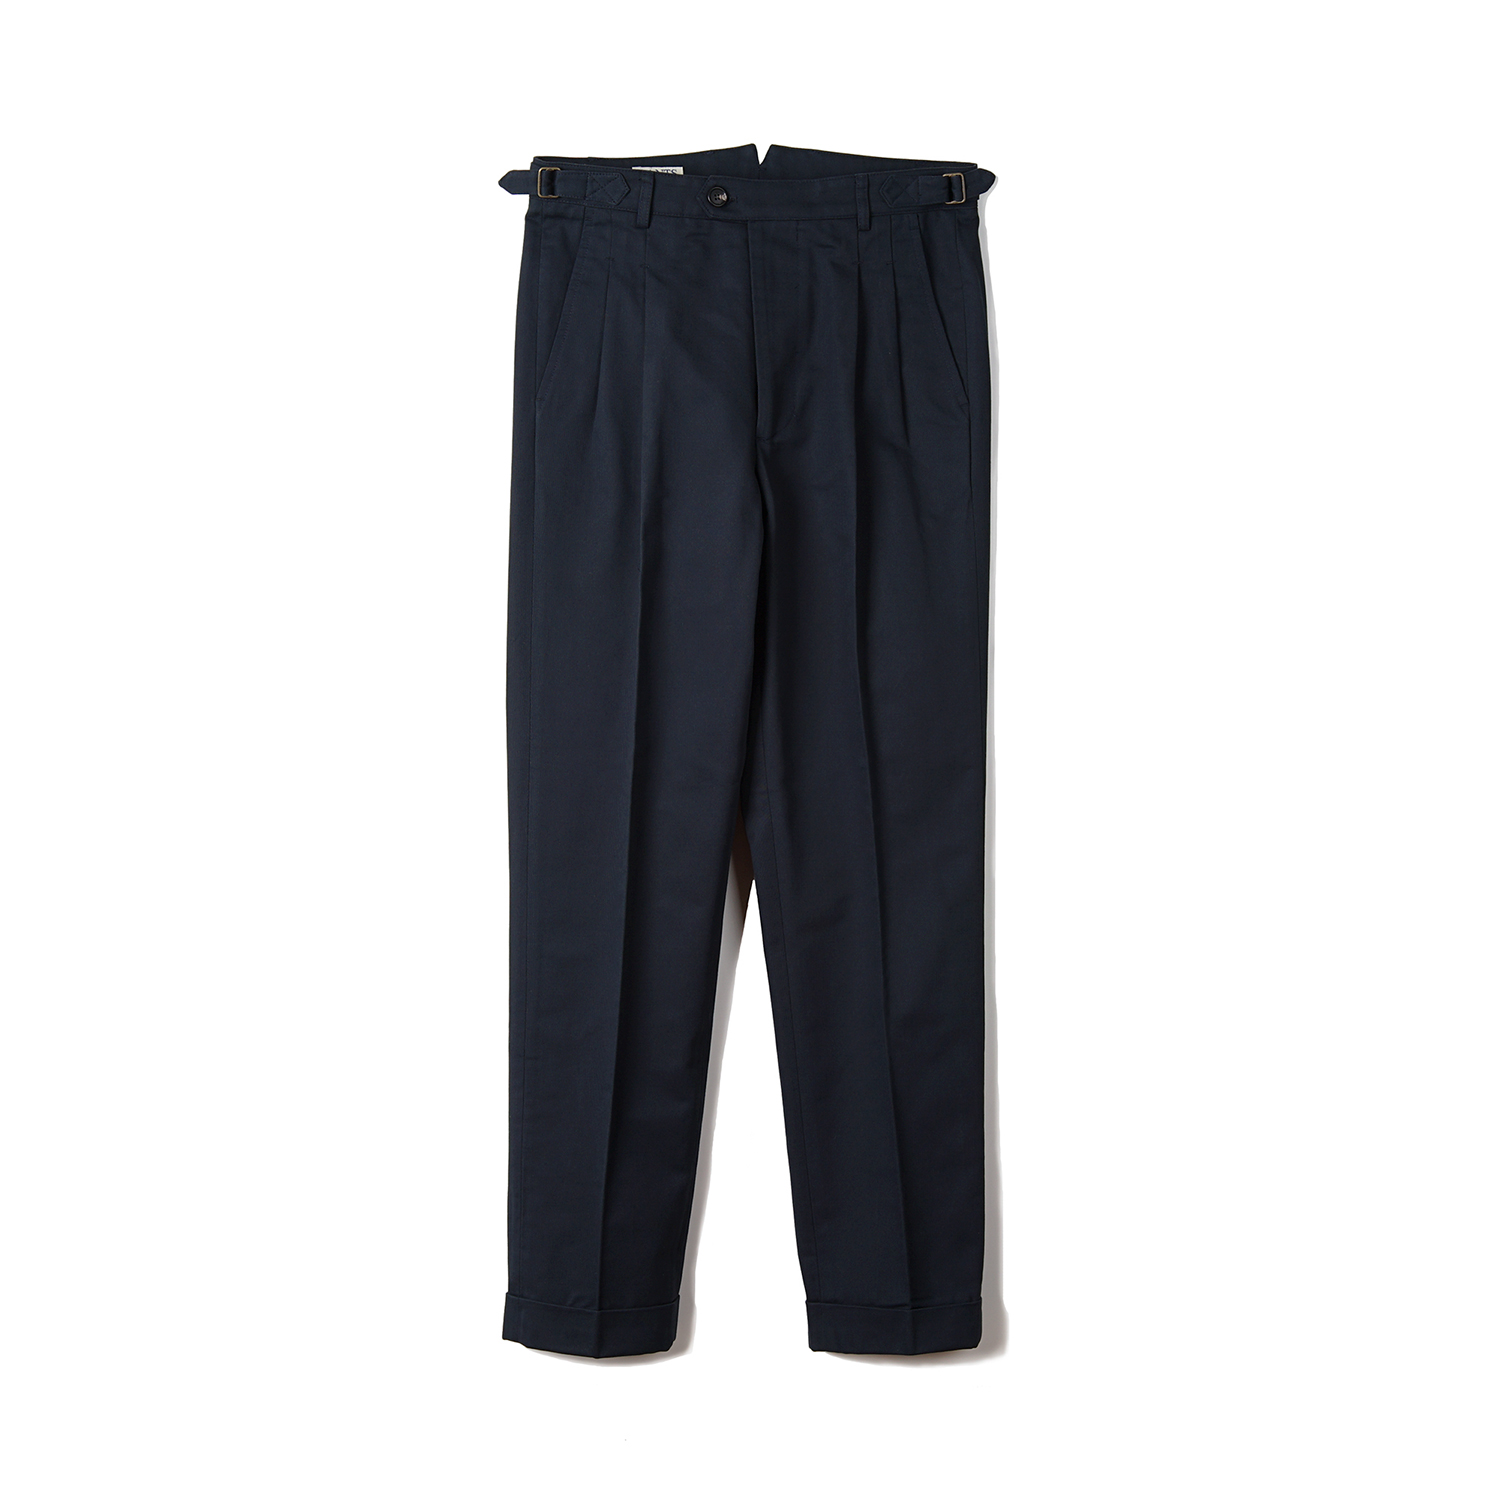 BTS Cotton Two-tuck Pants - Navy